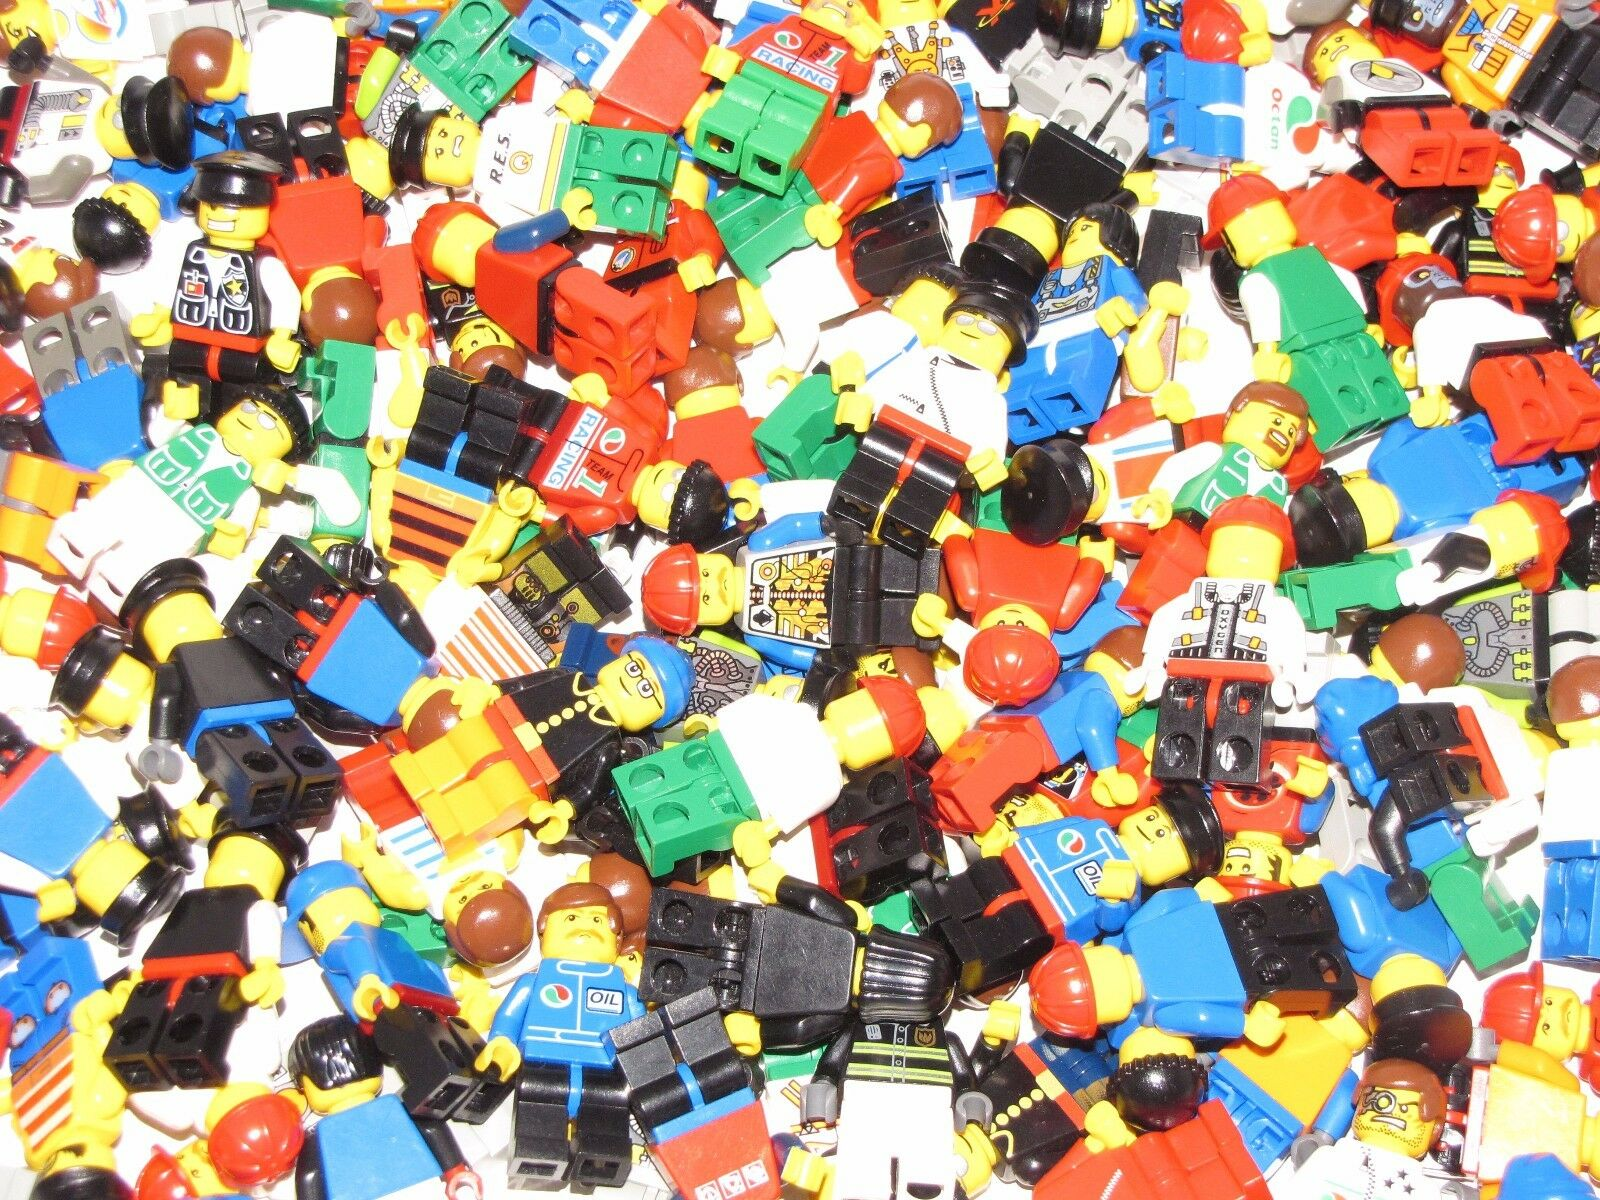 LEGO LOT OF 100 LEGO MINIFIGURES TOWN CITY NINJAGO MORE GRAB BAG RANDOM FIGS